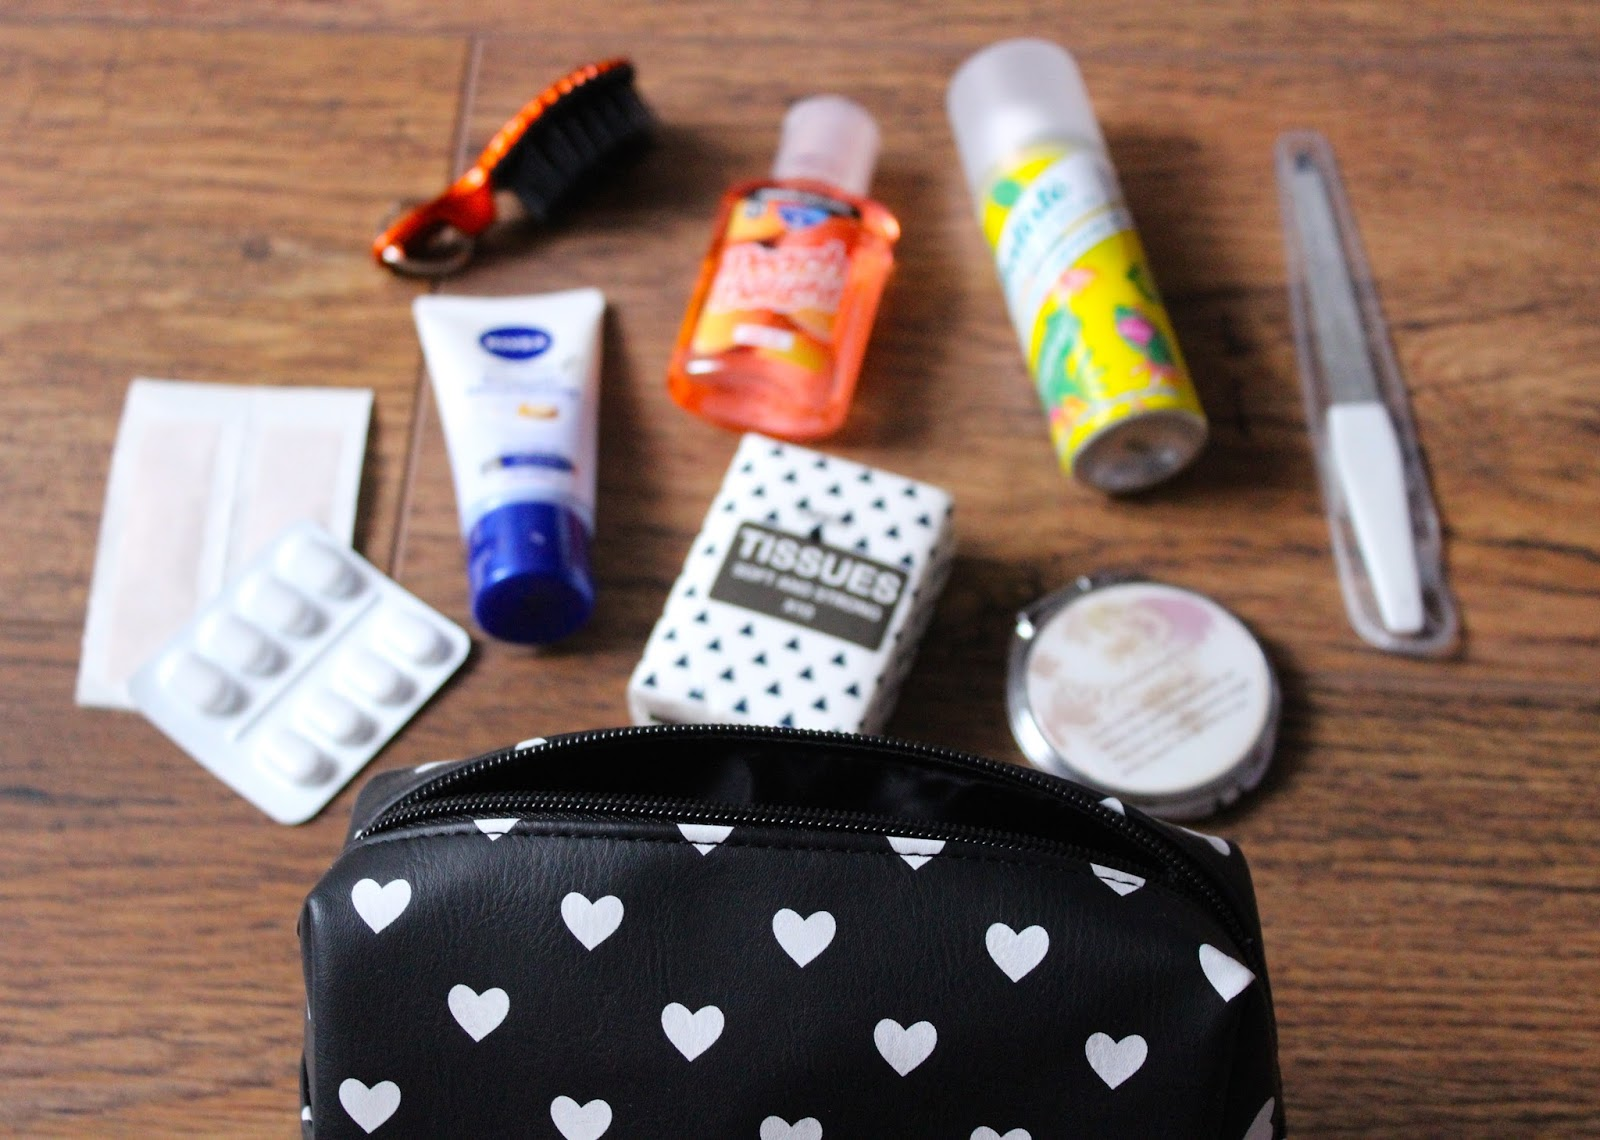 That S Why I Decided To Create Myself A Little Handbag Essentials Kit Have Me Prepared For Wver Might Come Up And Today M Going Show You What